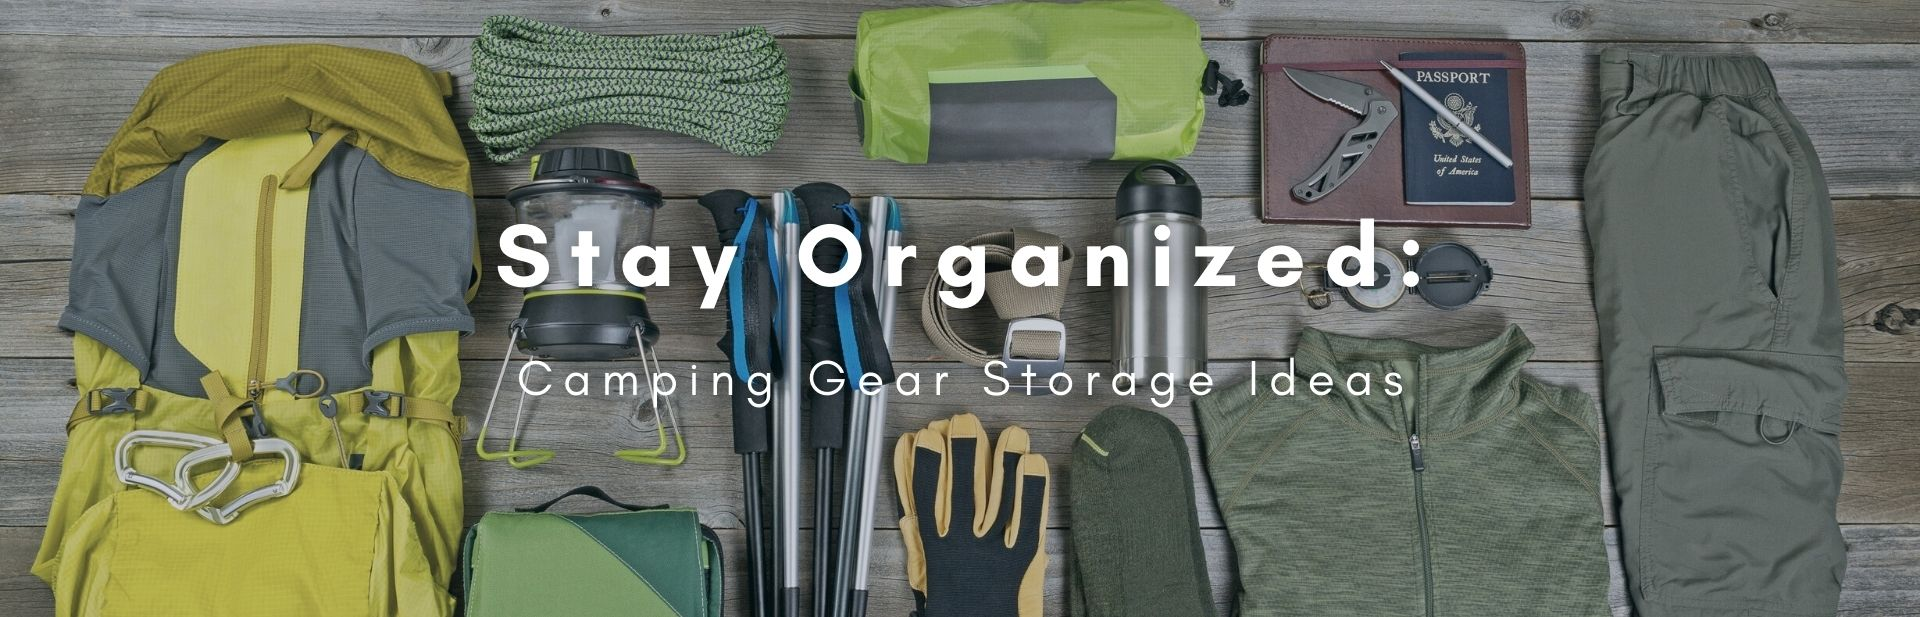 26 Camping Gear Storage Ideas To Stay Organized Outdoors